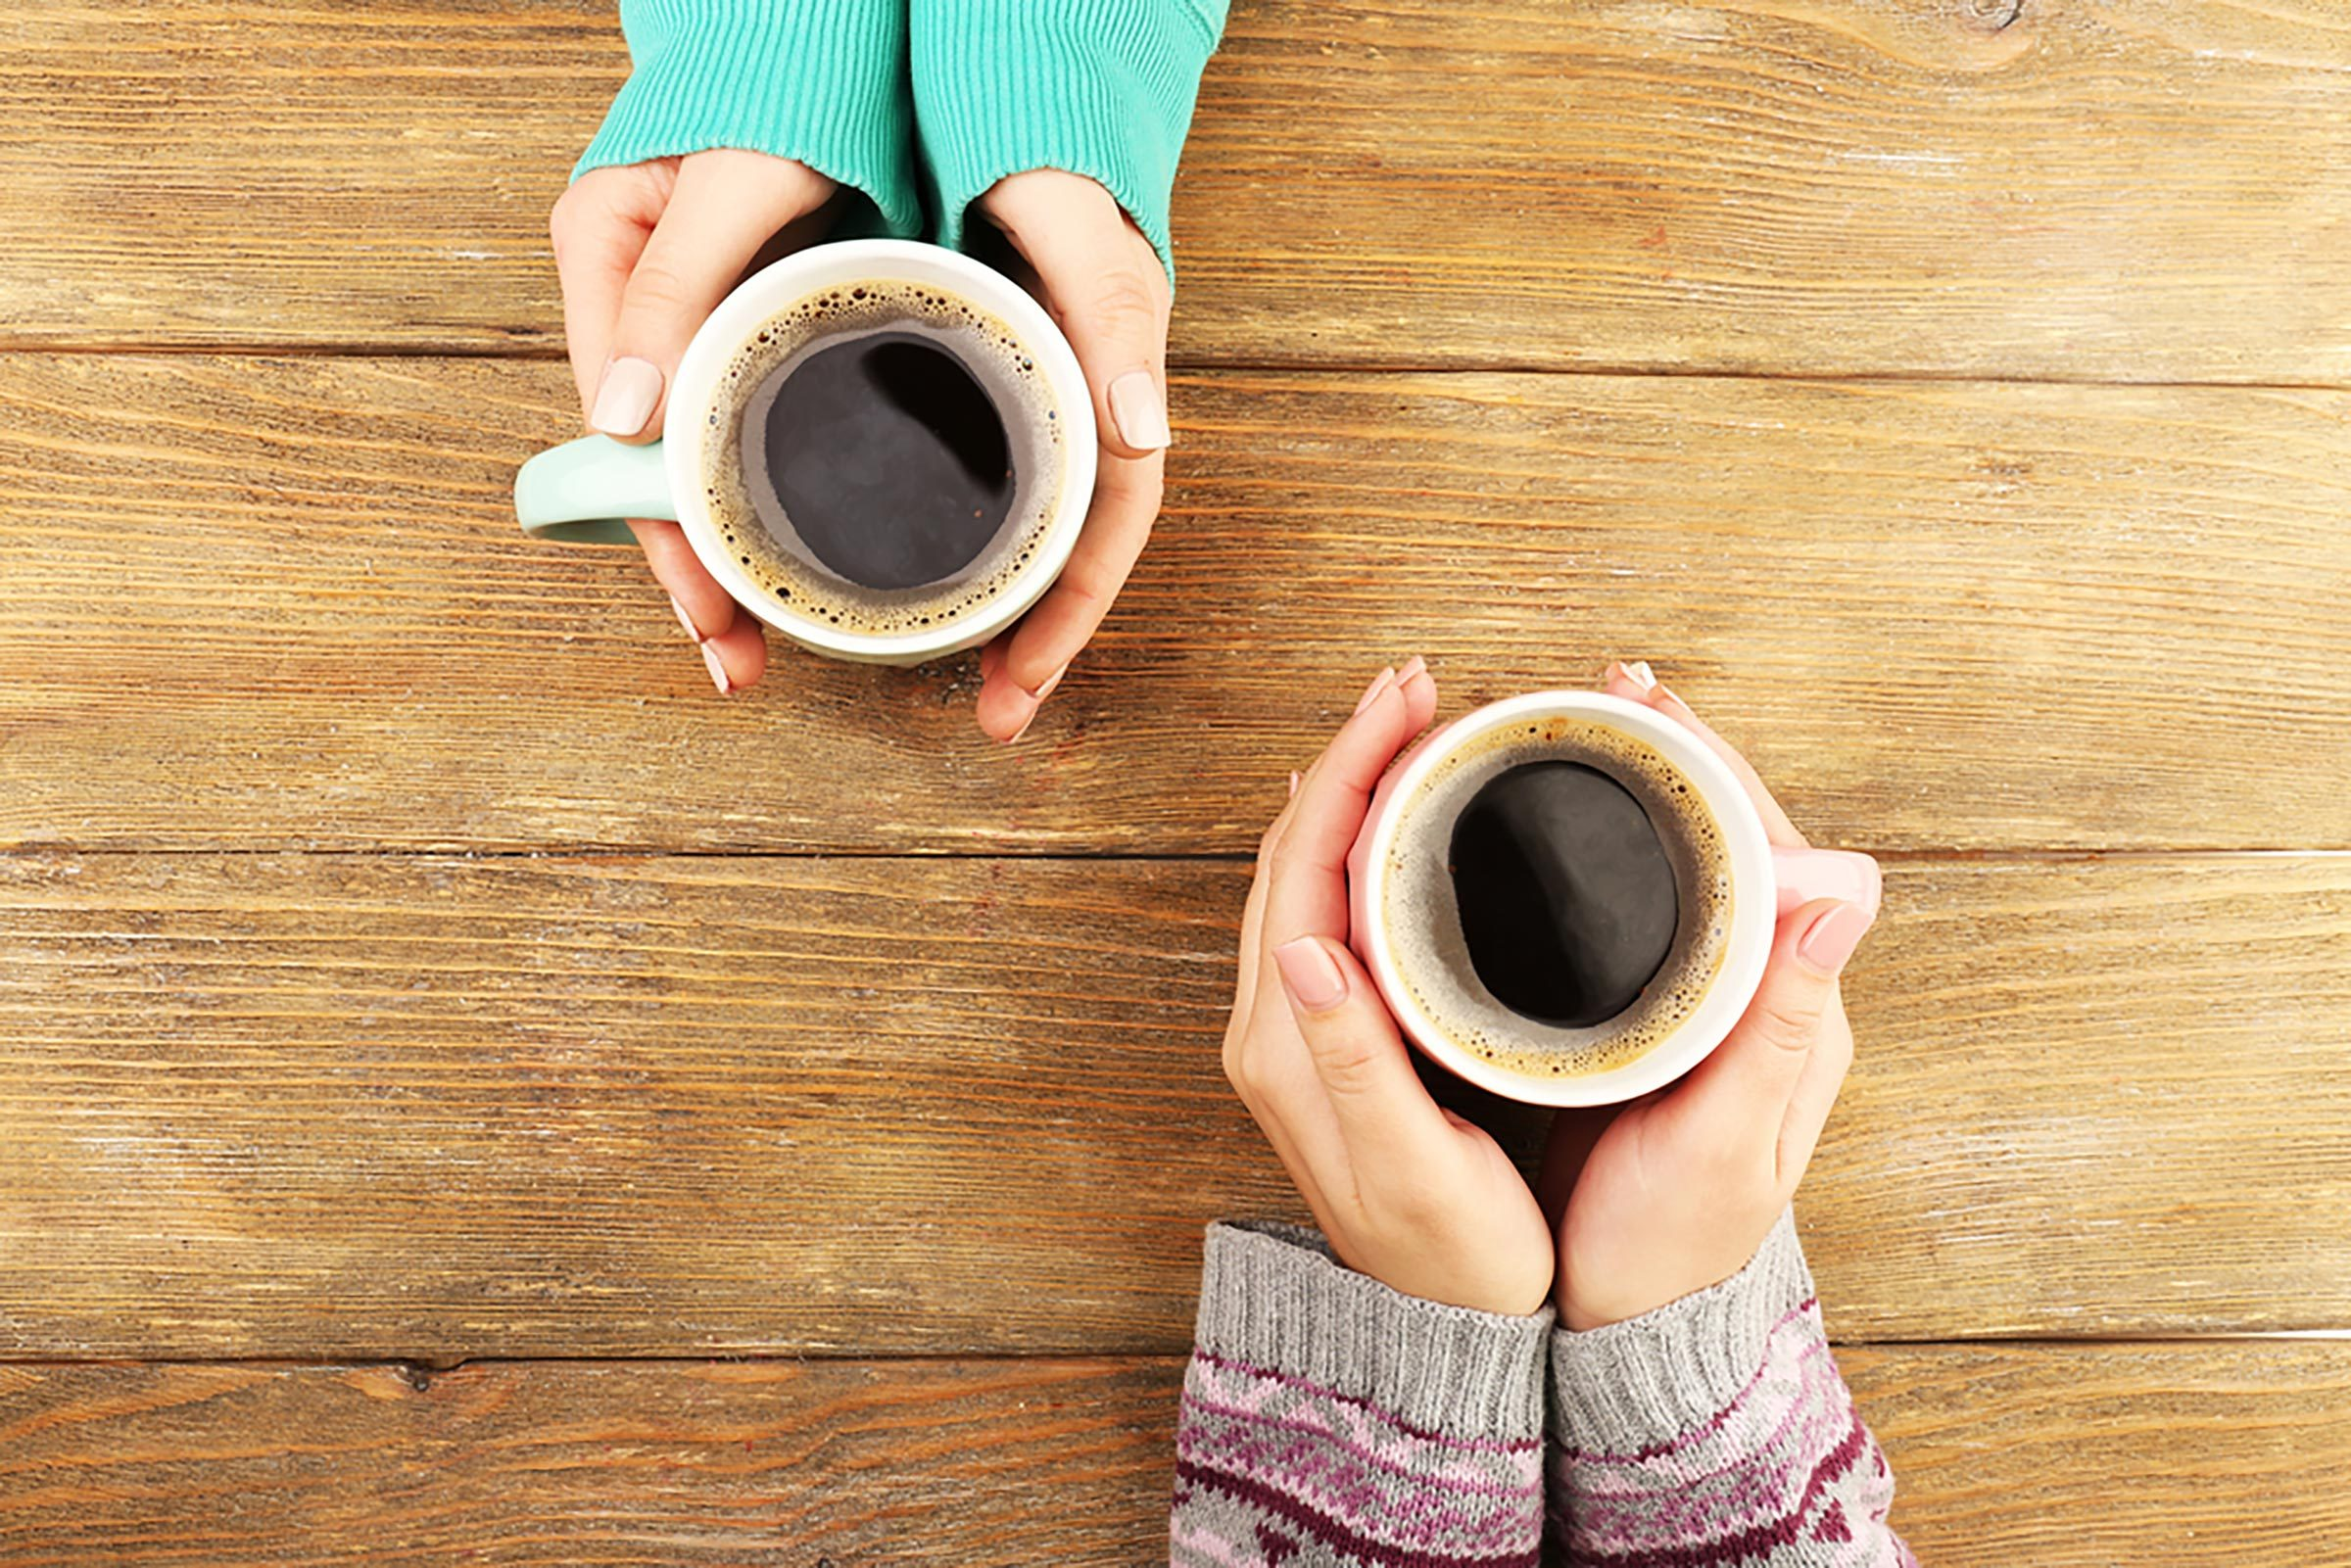 Two sets of hands holding cups of coffee